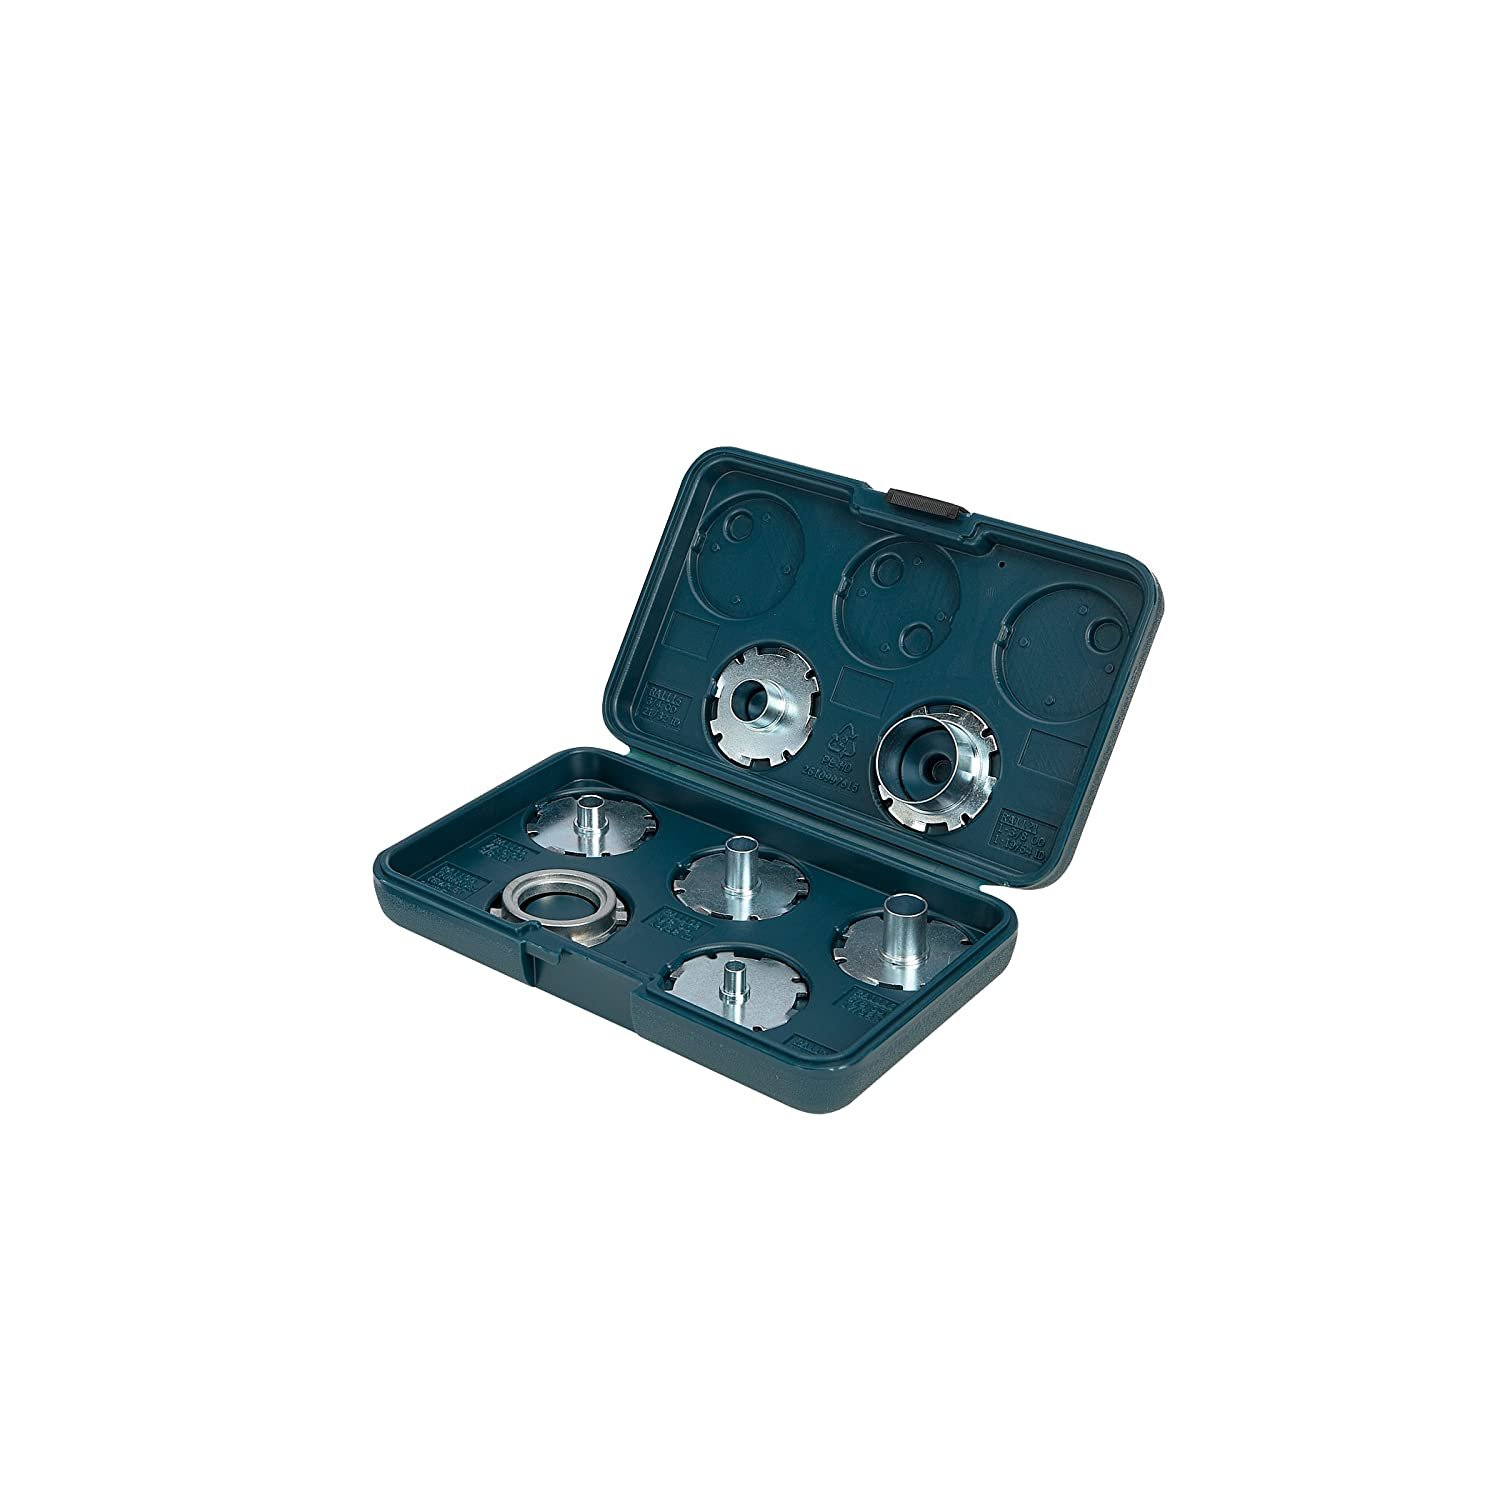 Bosch Ra1125 7-piece Router Template Guide Set at Sears.com